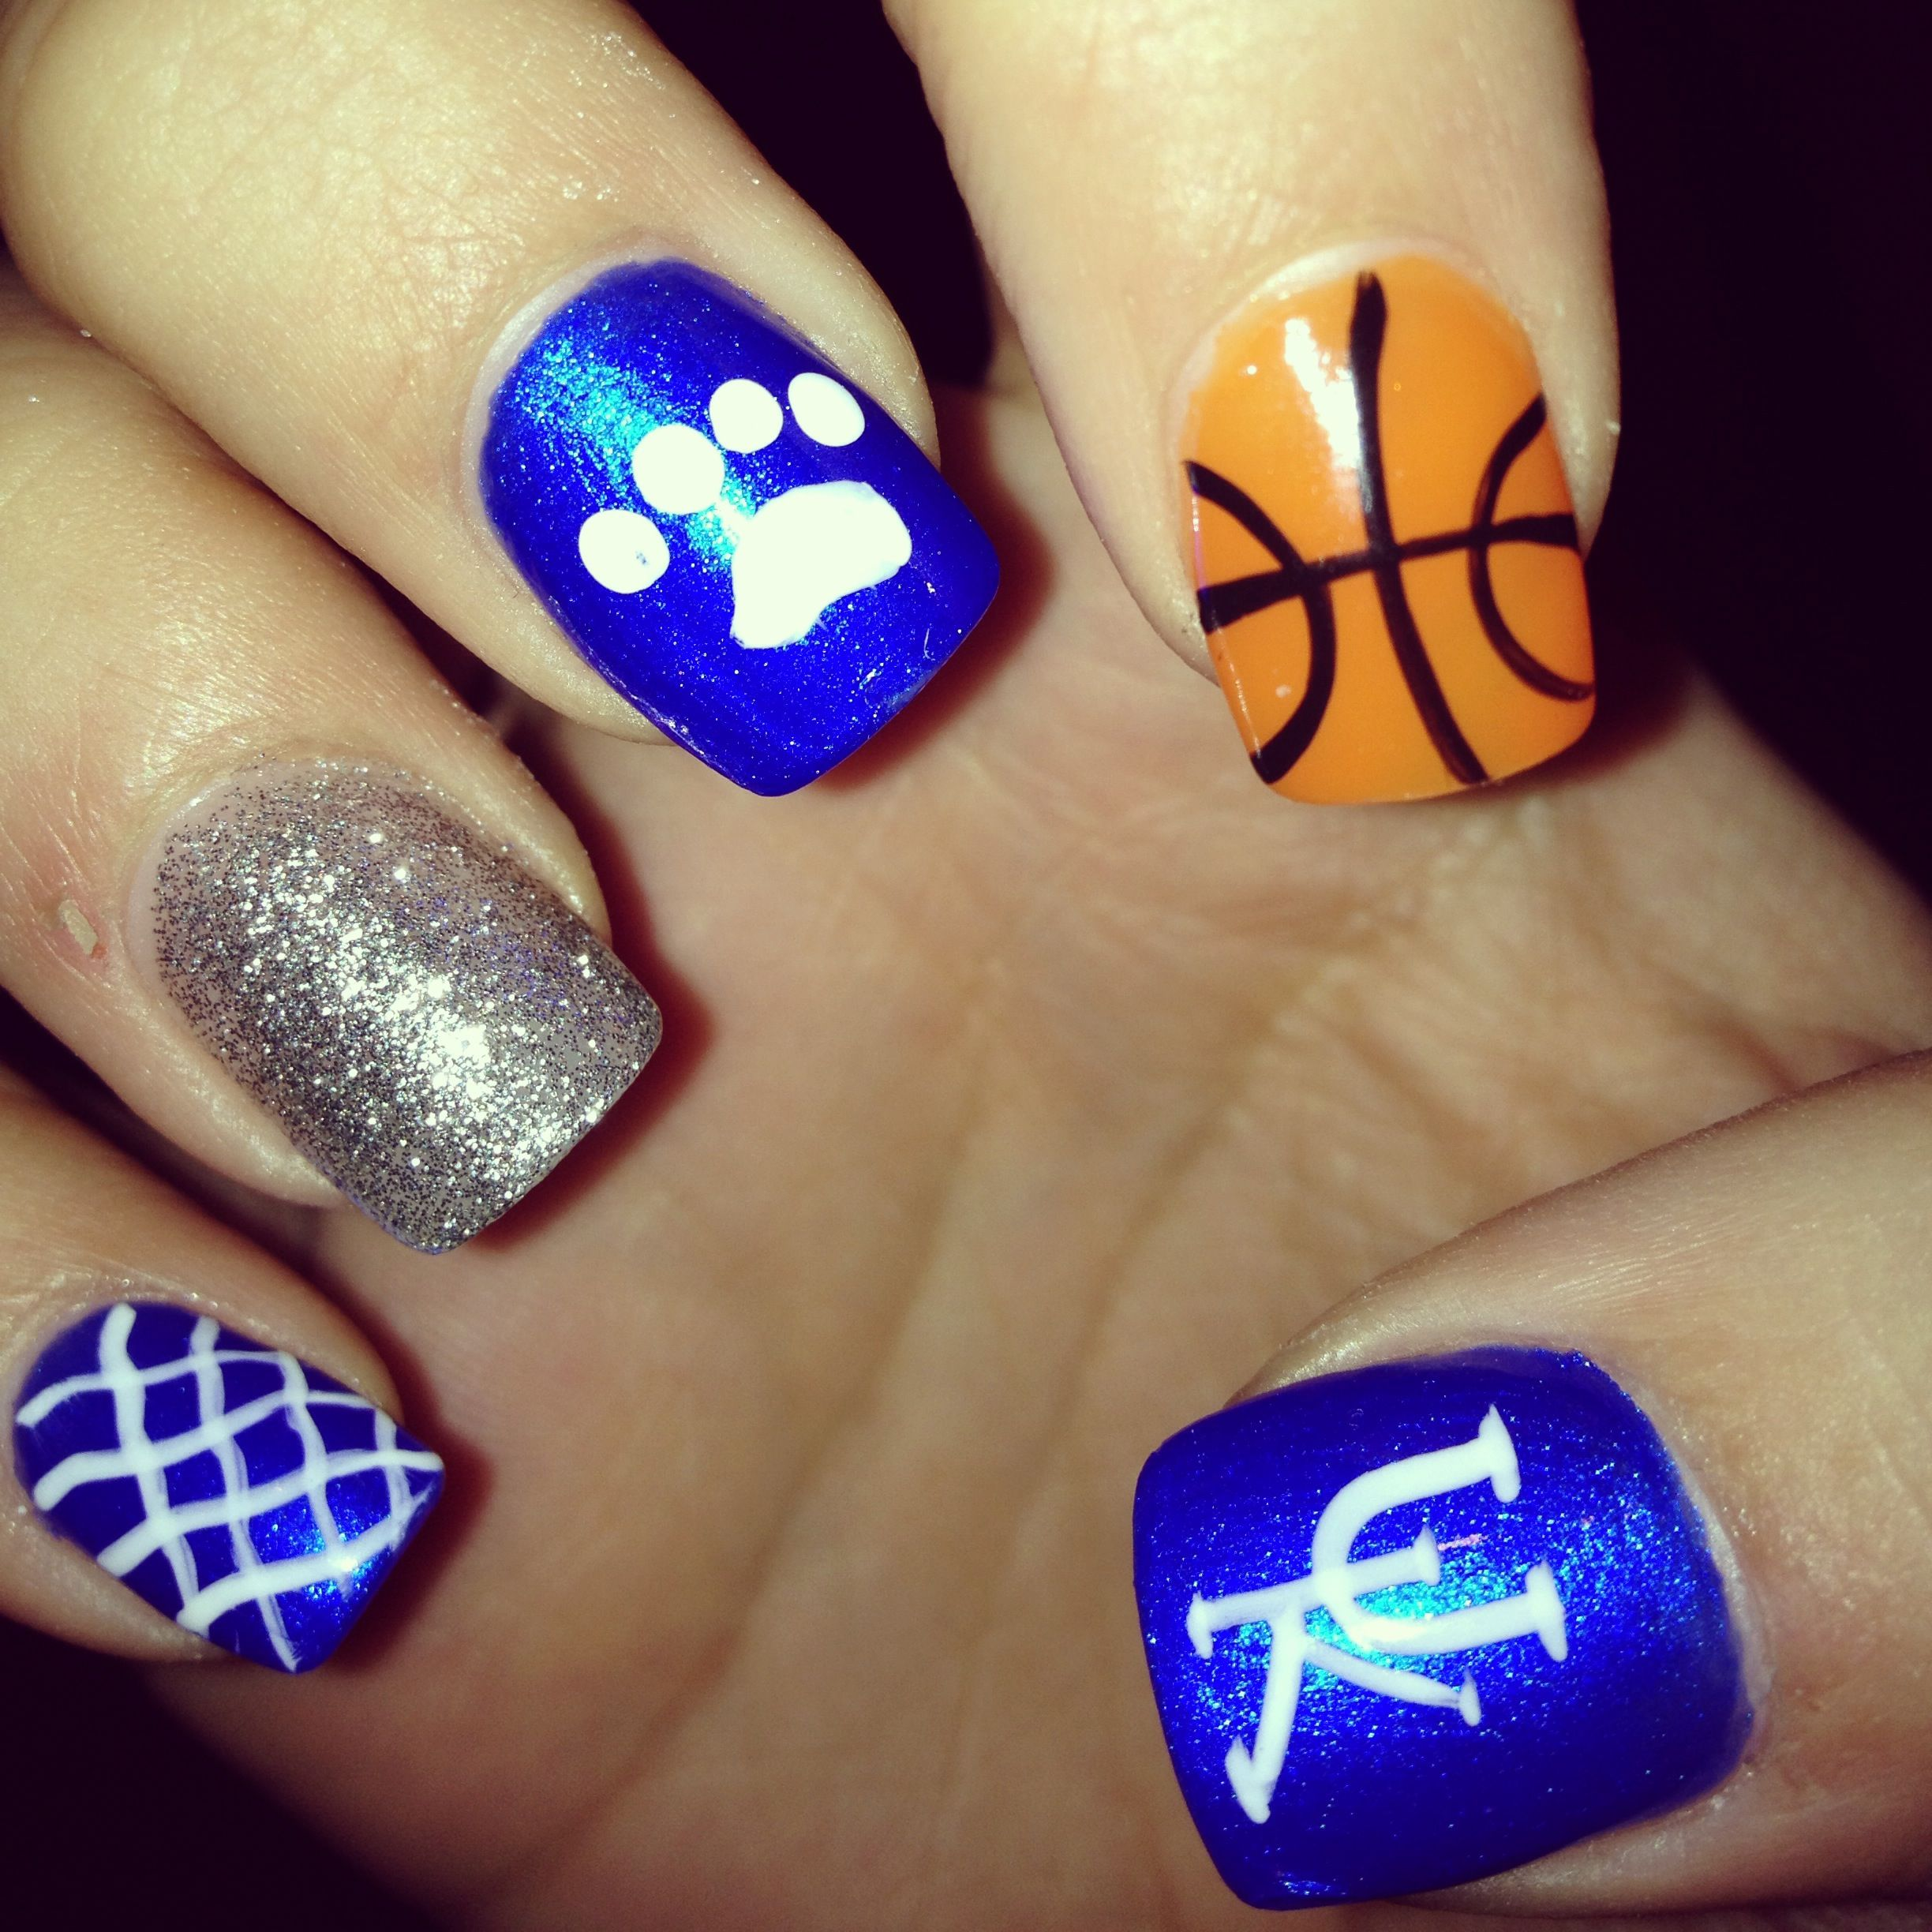 Basketball nails | Kentucky, Basketball nails and Makeup